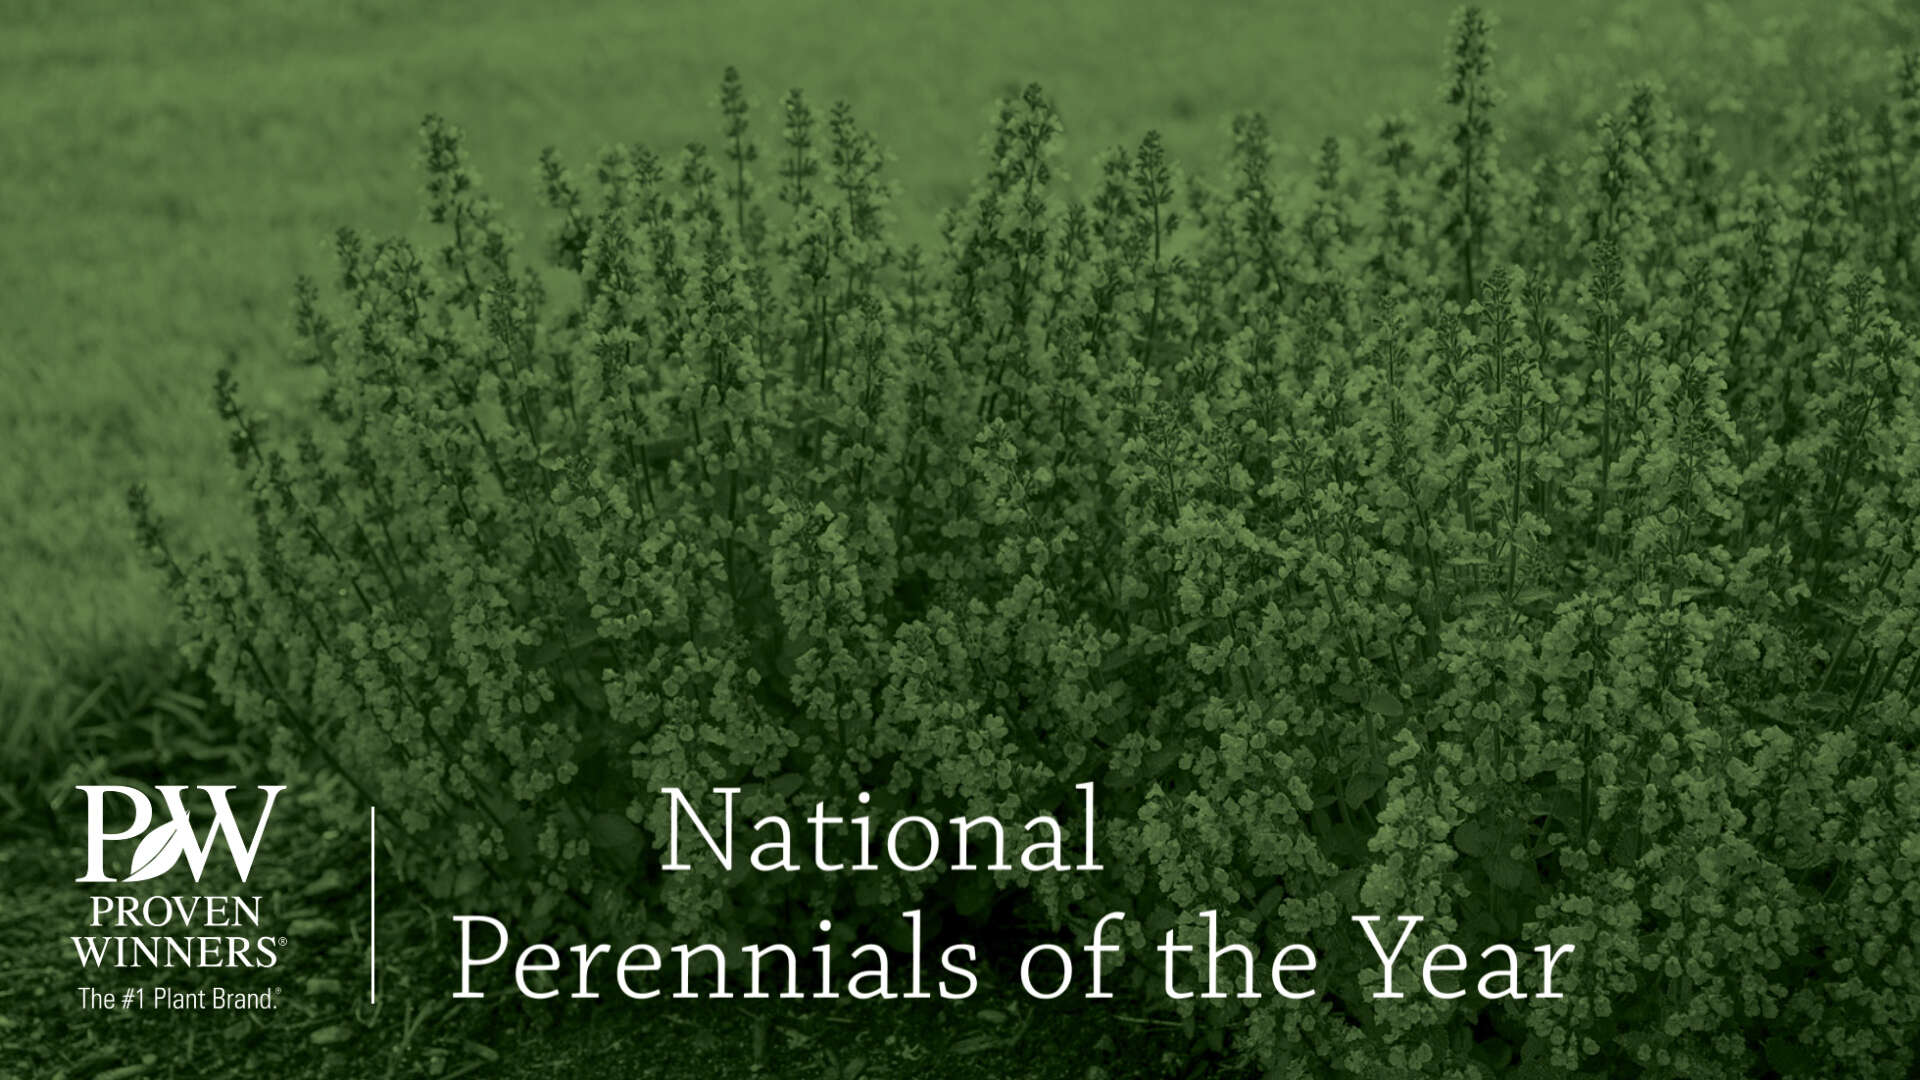 2021 National Perennials of the Year